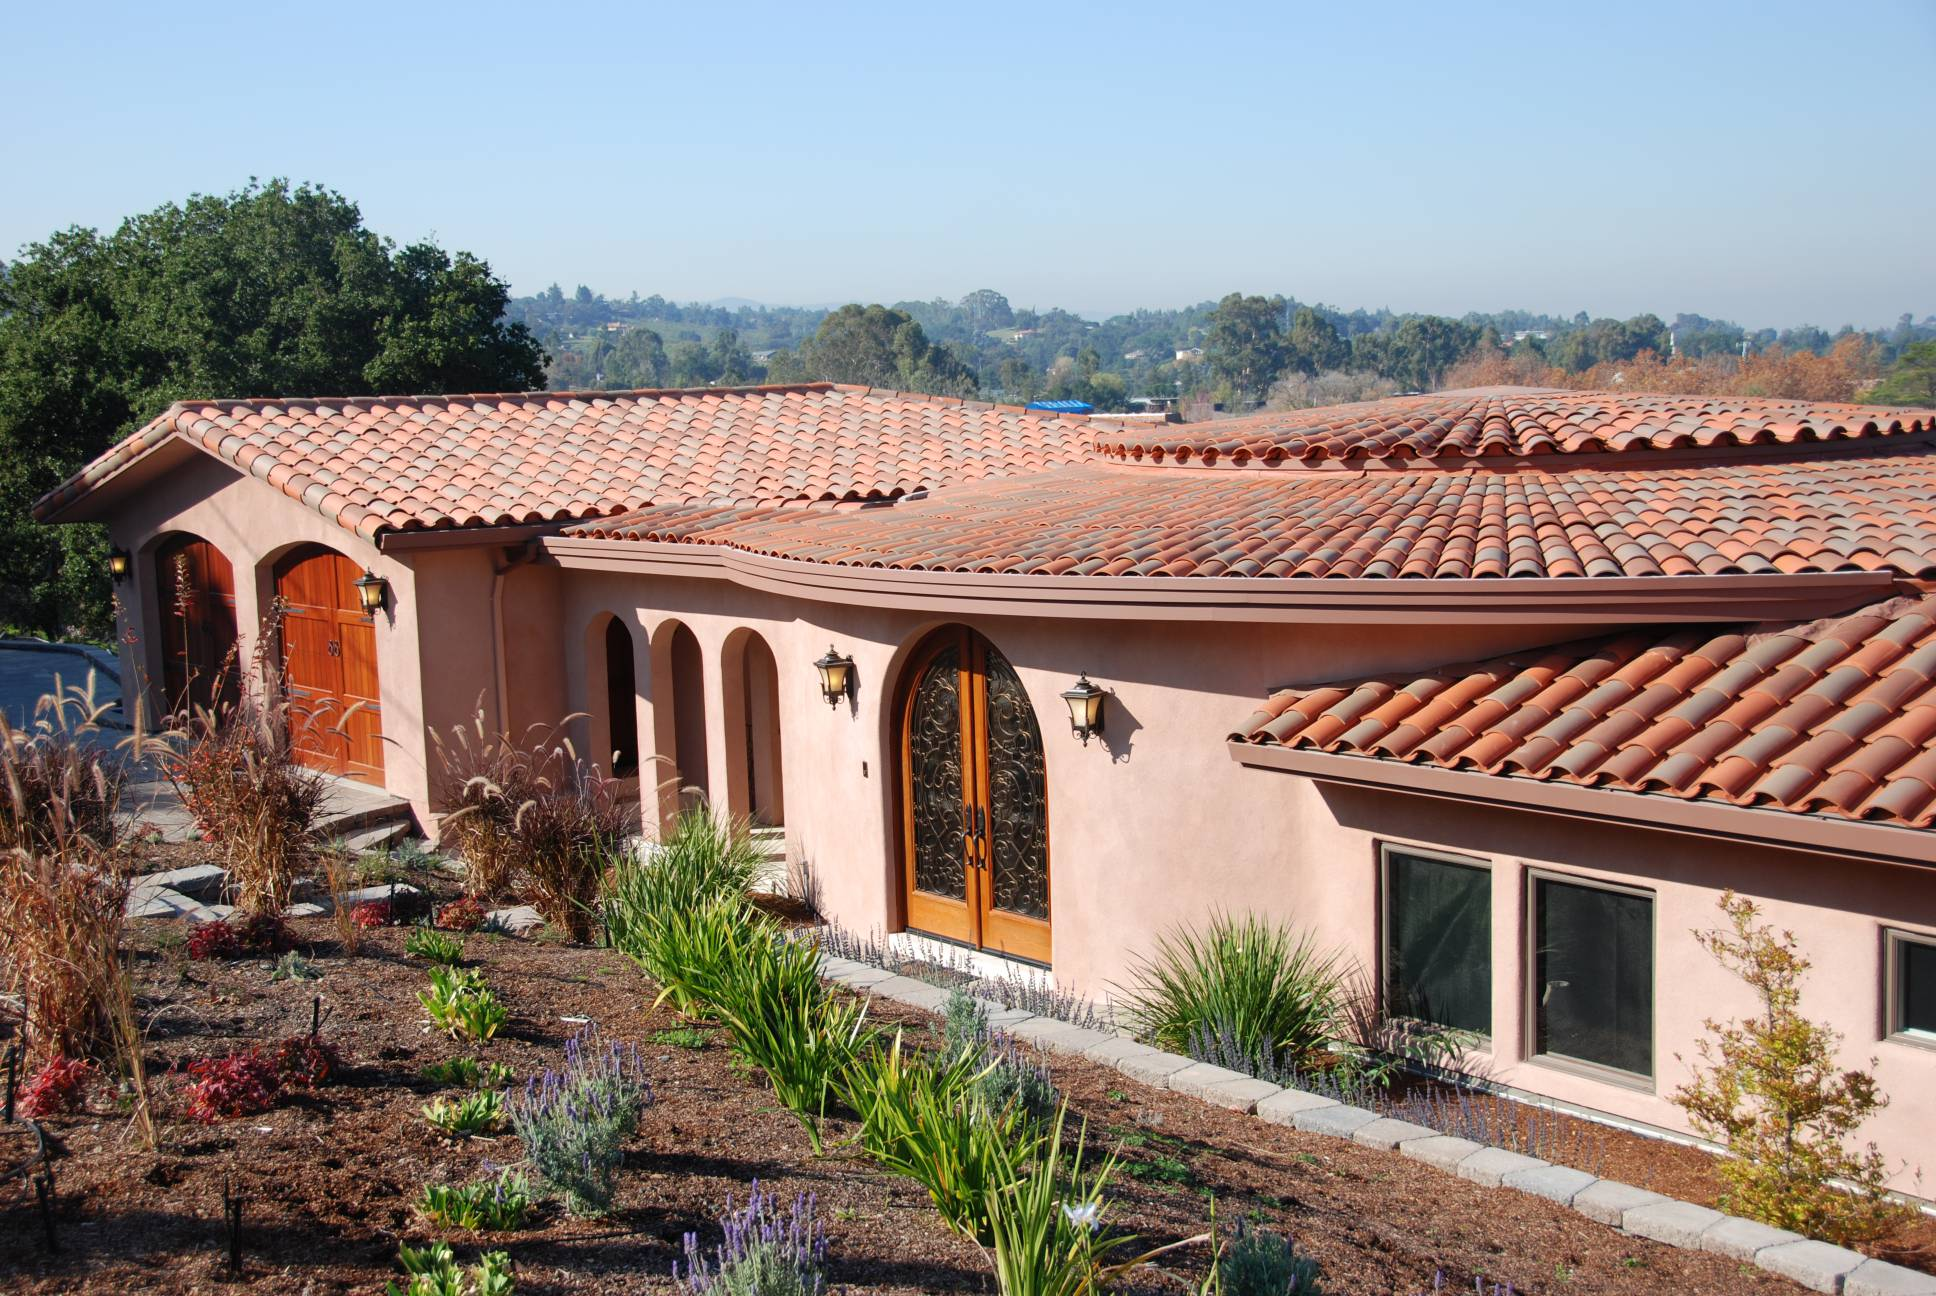 Modern Exterior tile roof, architect design work, Los Altos Hills